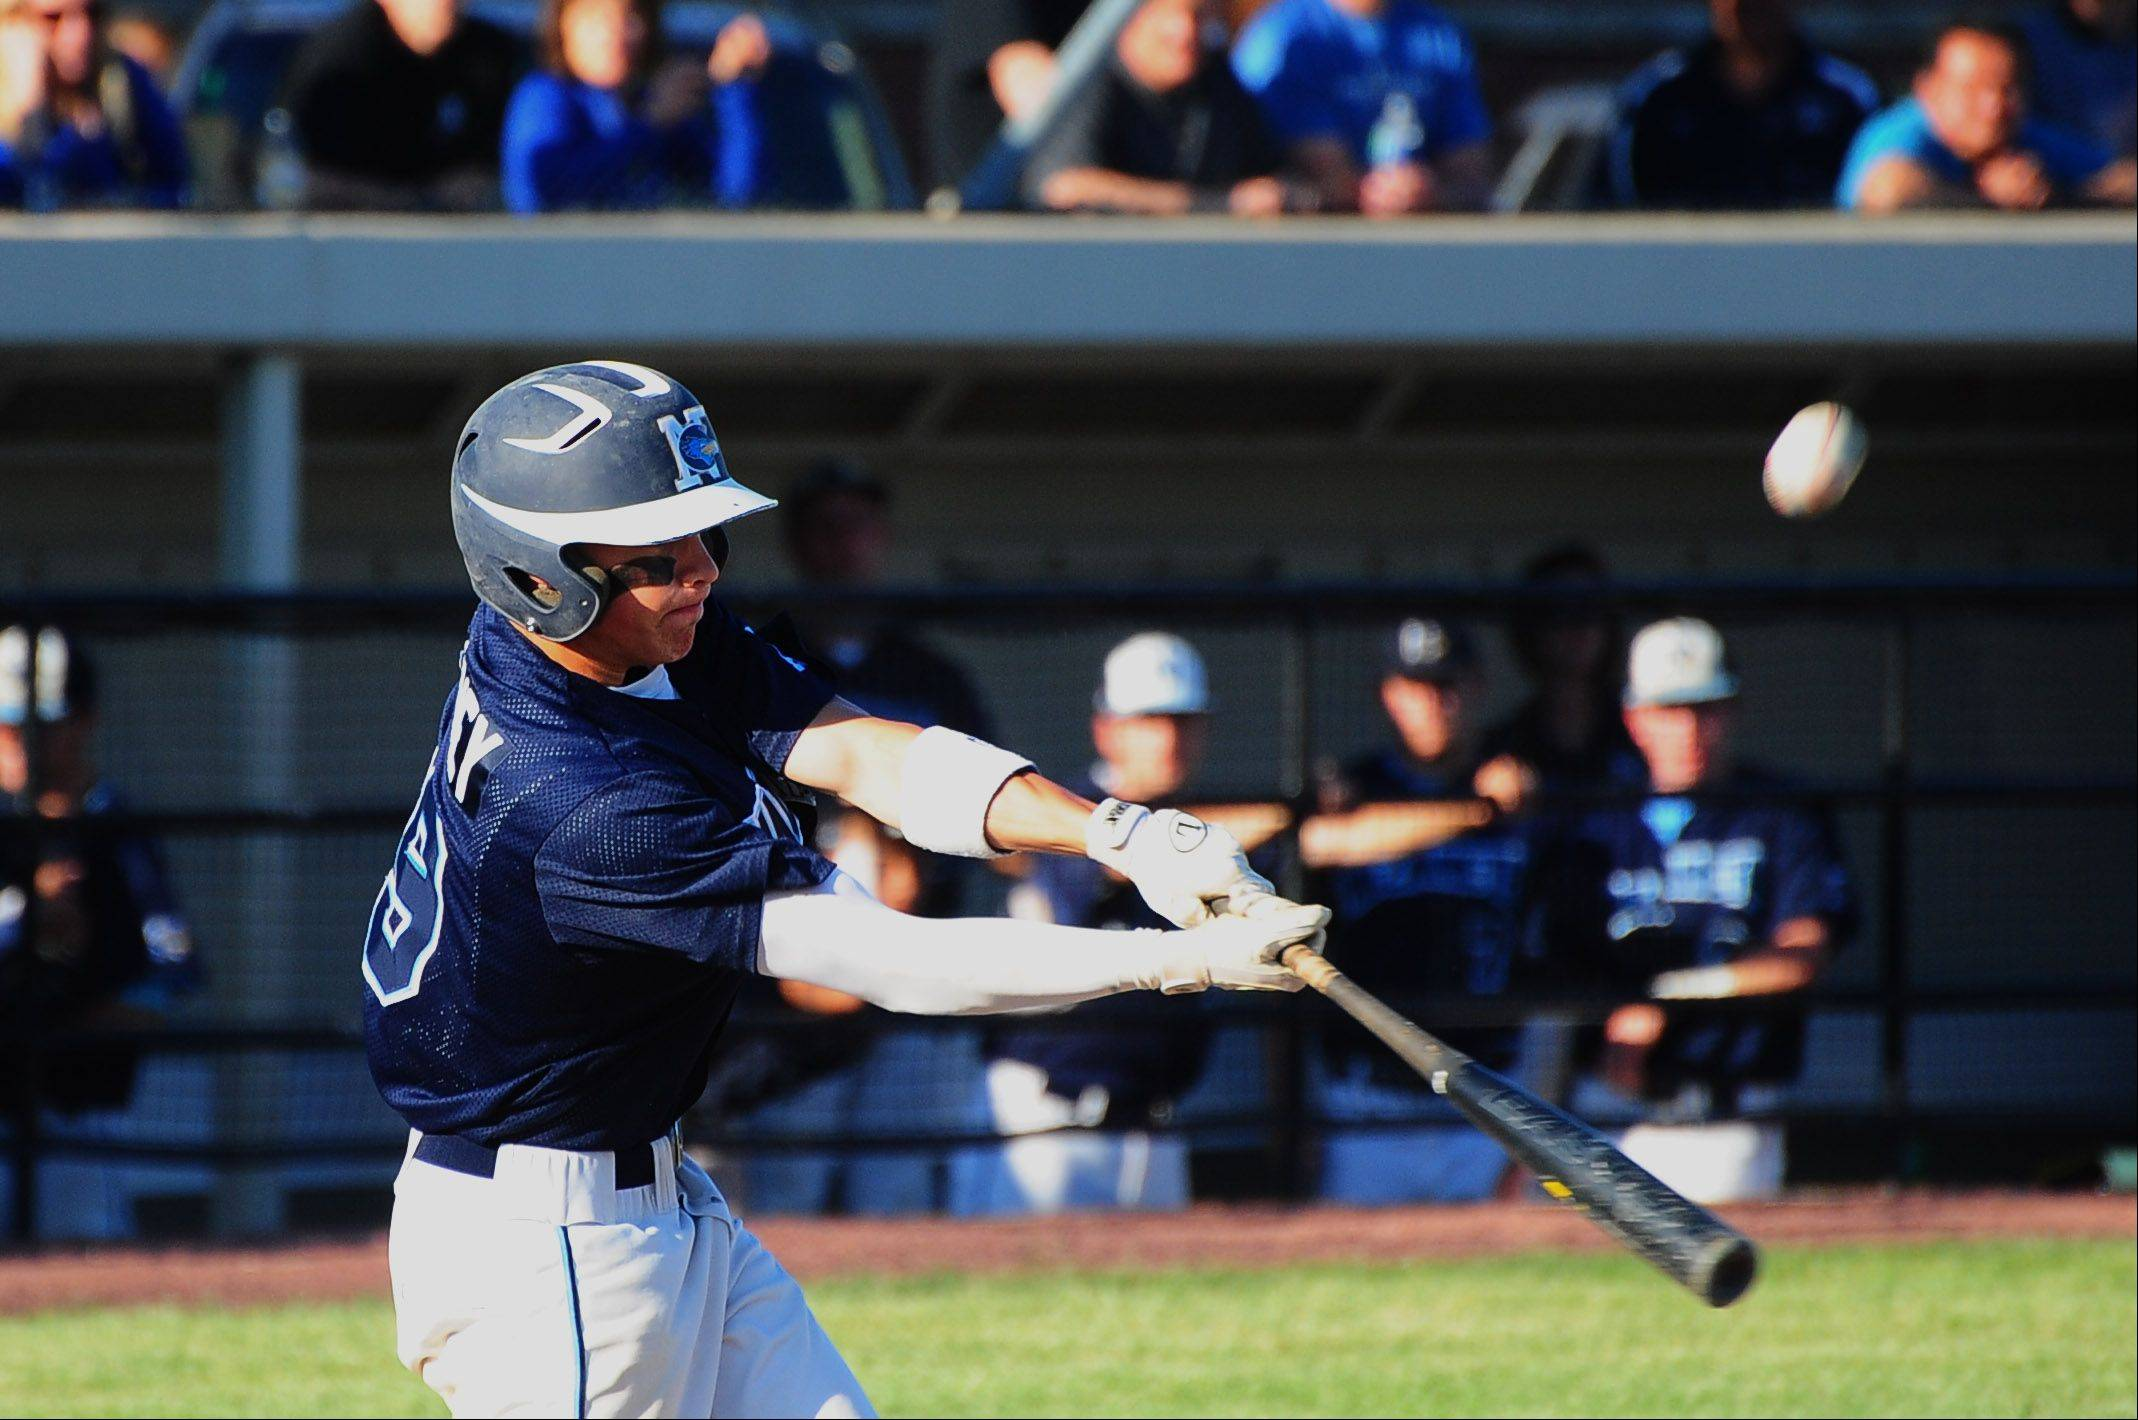 Nazareth Academy's Sean Maloney connects against Grayslake Central in Class 3A baseball supersectional action Monday.